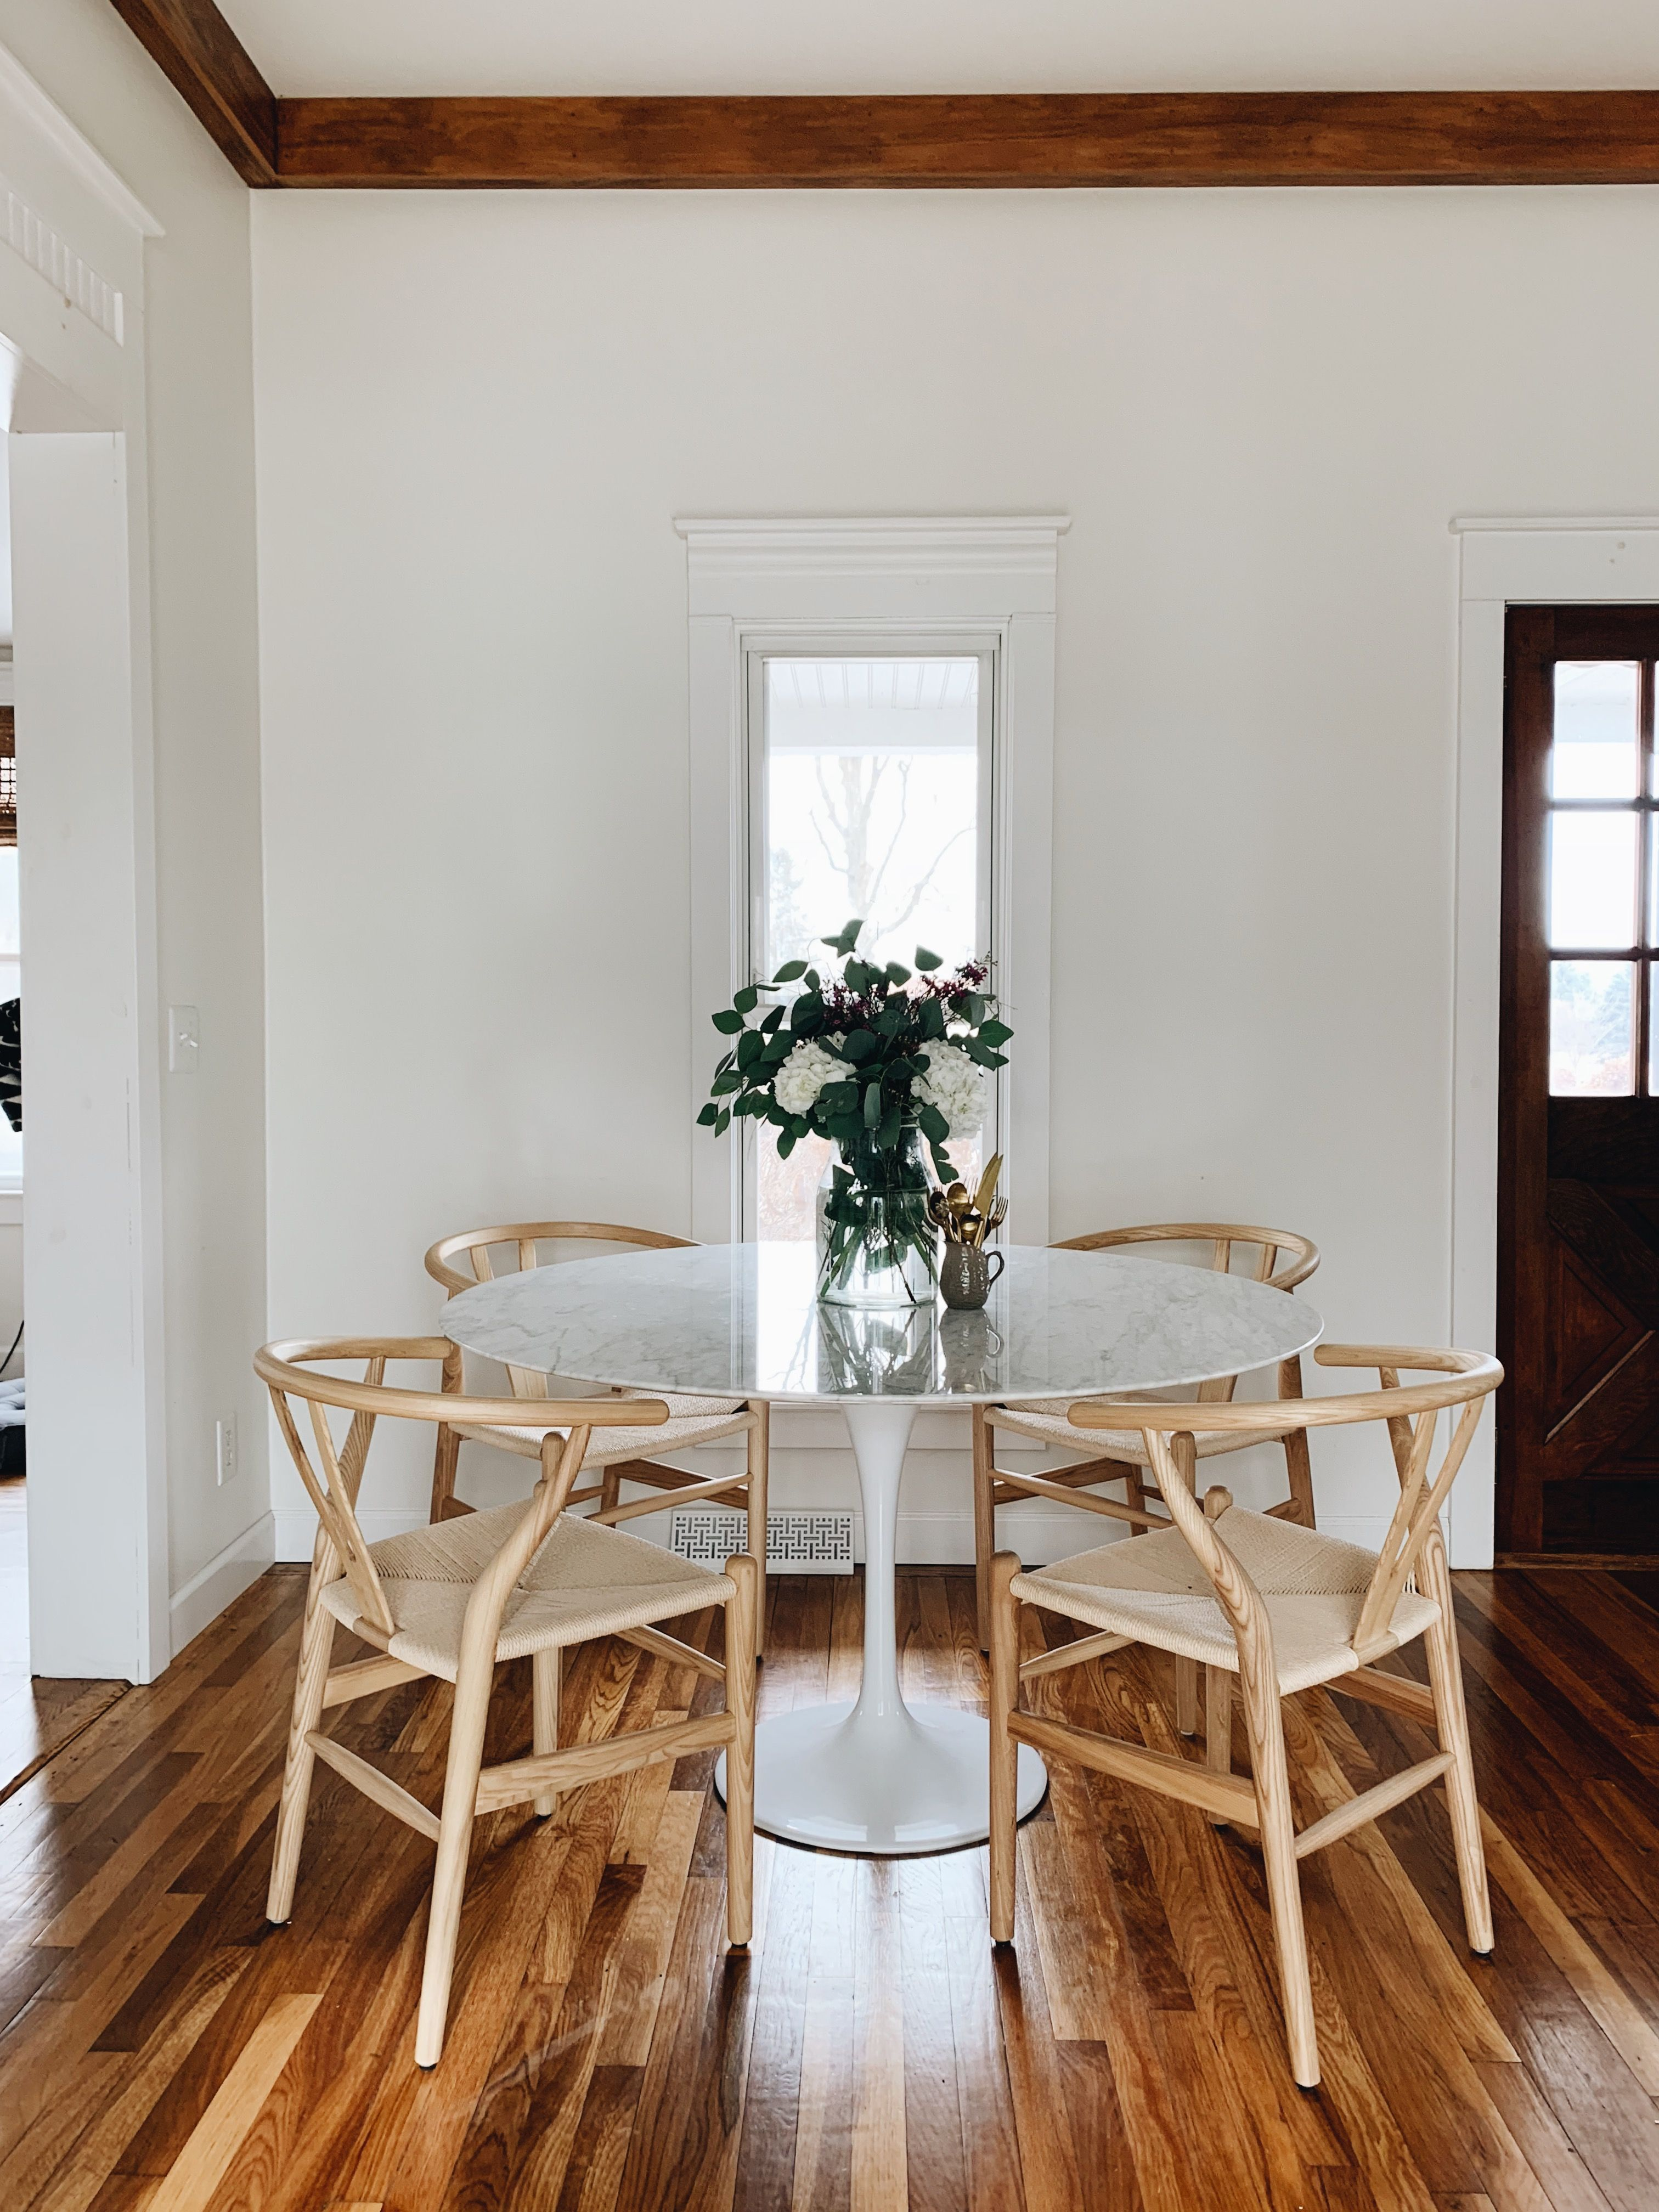 Finding The Perfect Table Marble Tables Living Room Tulip Dining Table Dining Table Marble